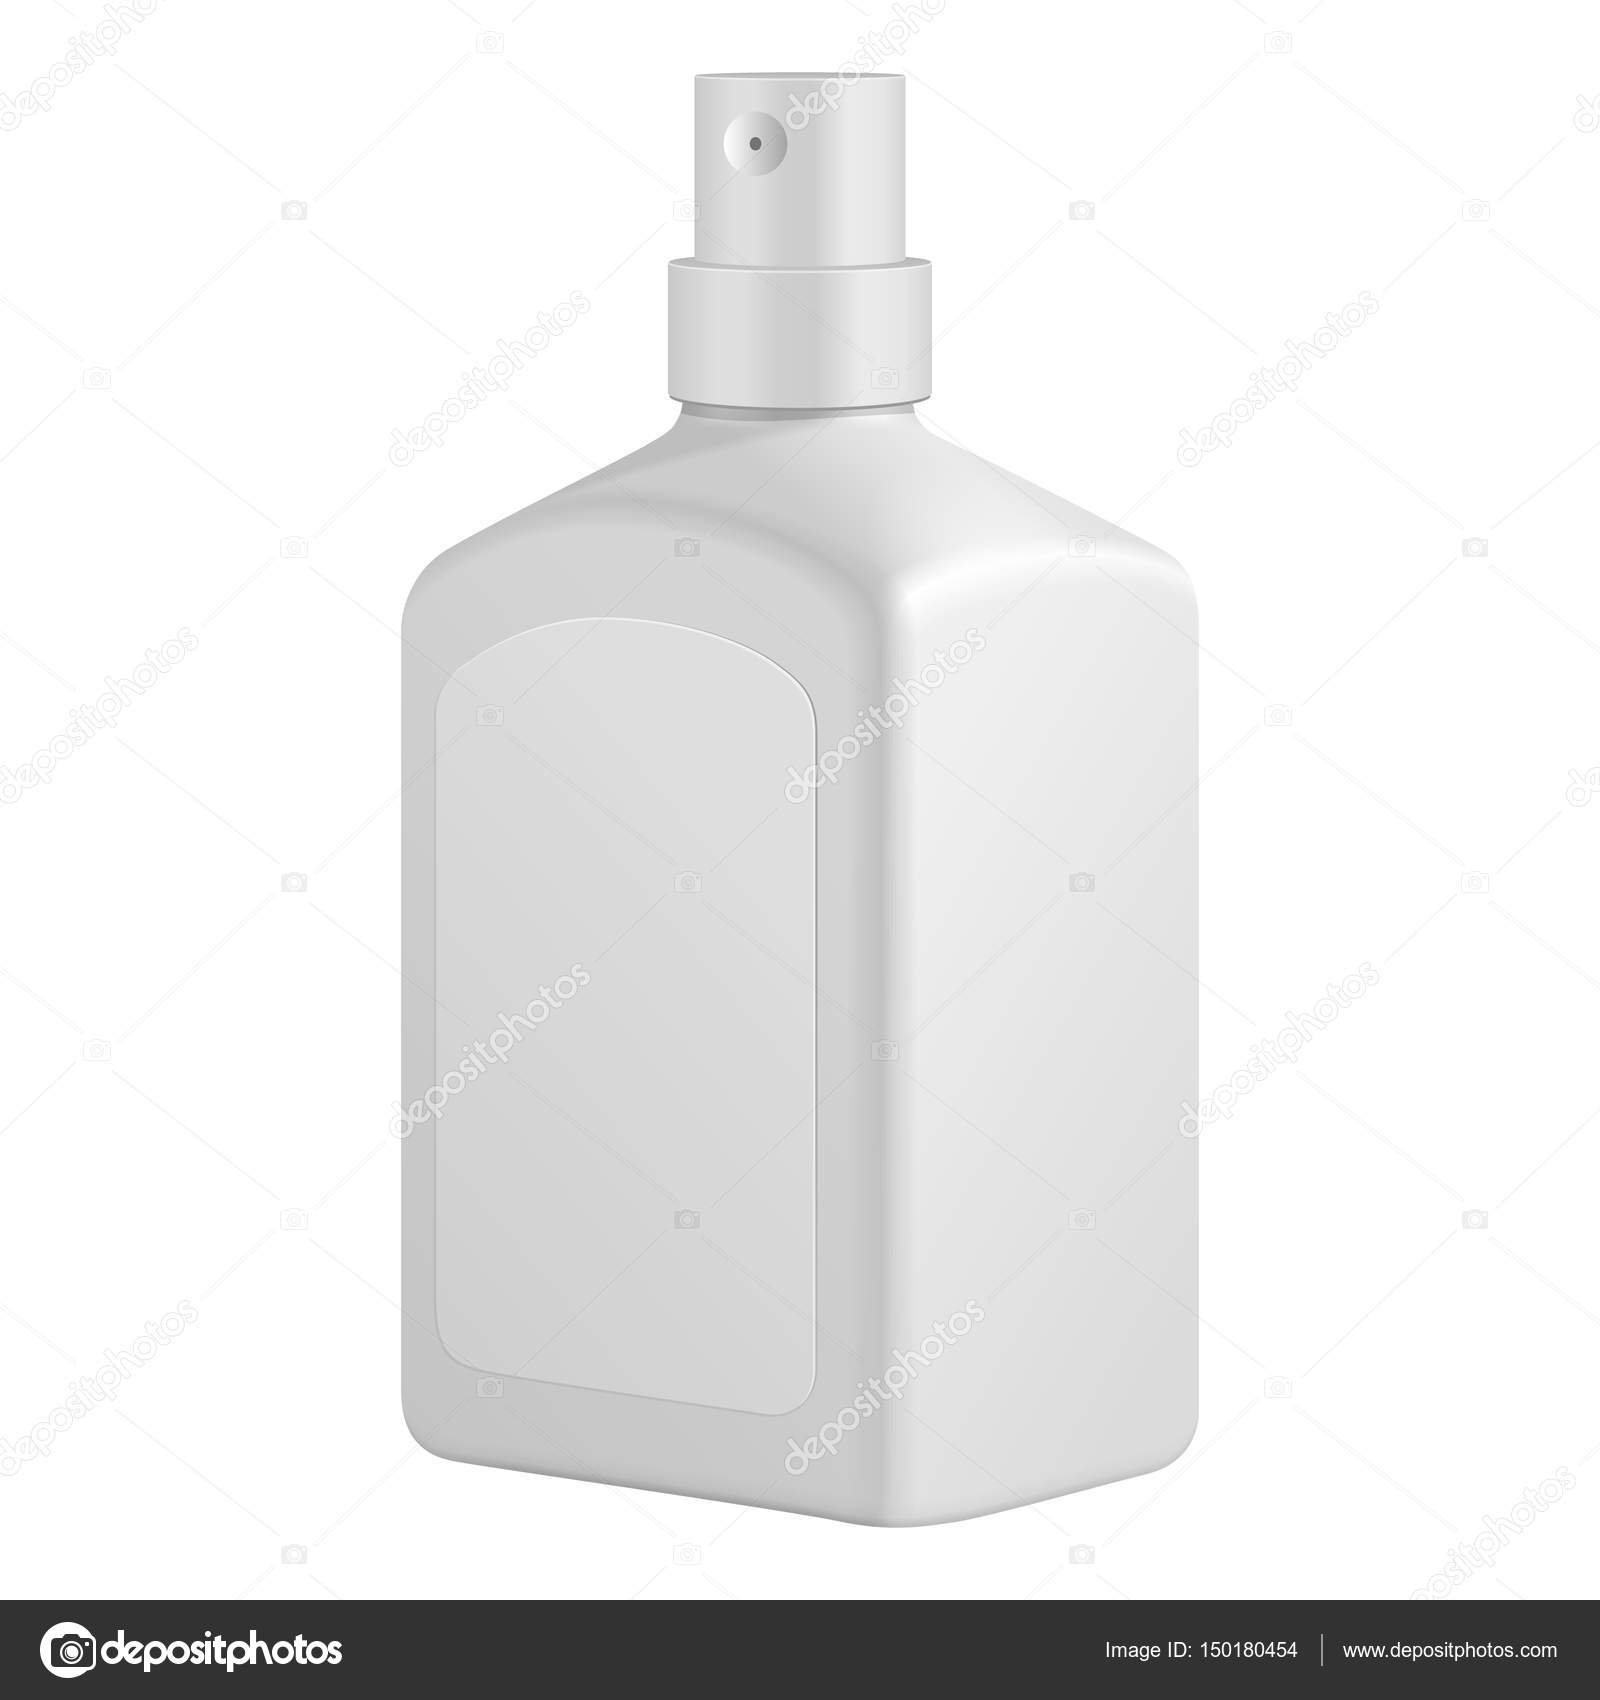 square cosmetic or hygiene spray dispenser pump plastic bottle with